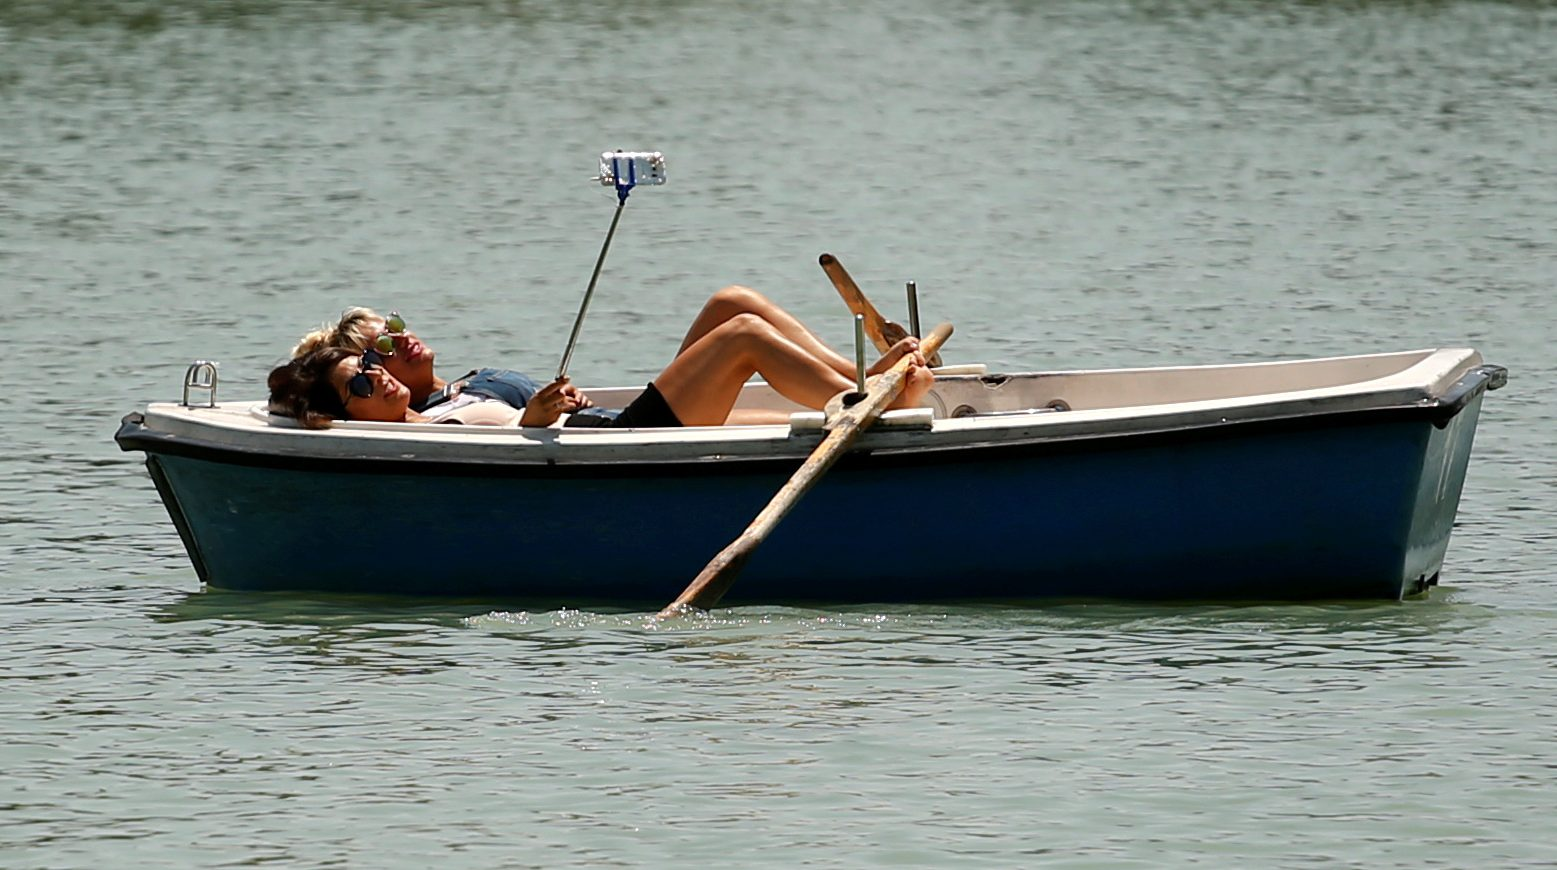 Two woman take a selfie on a boat during the unusual high temperatures at Retiro park in Madrid, Spain